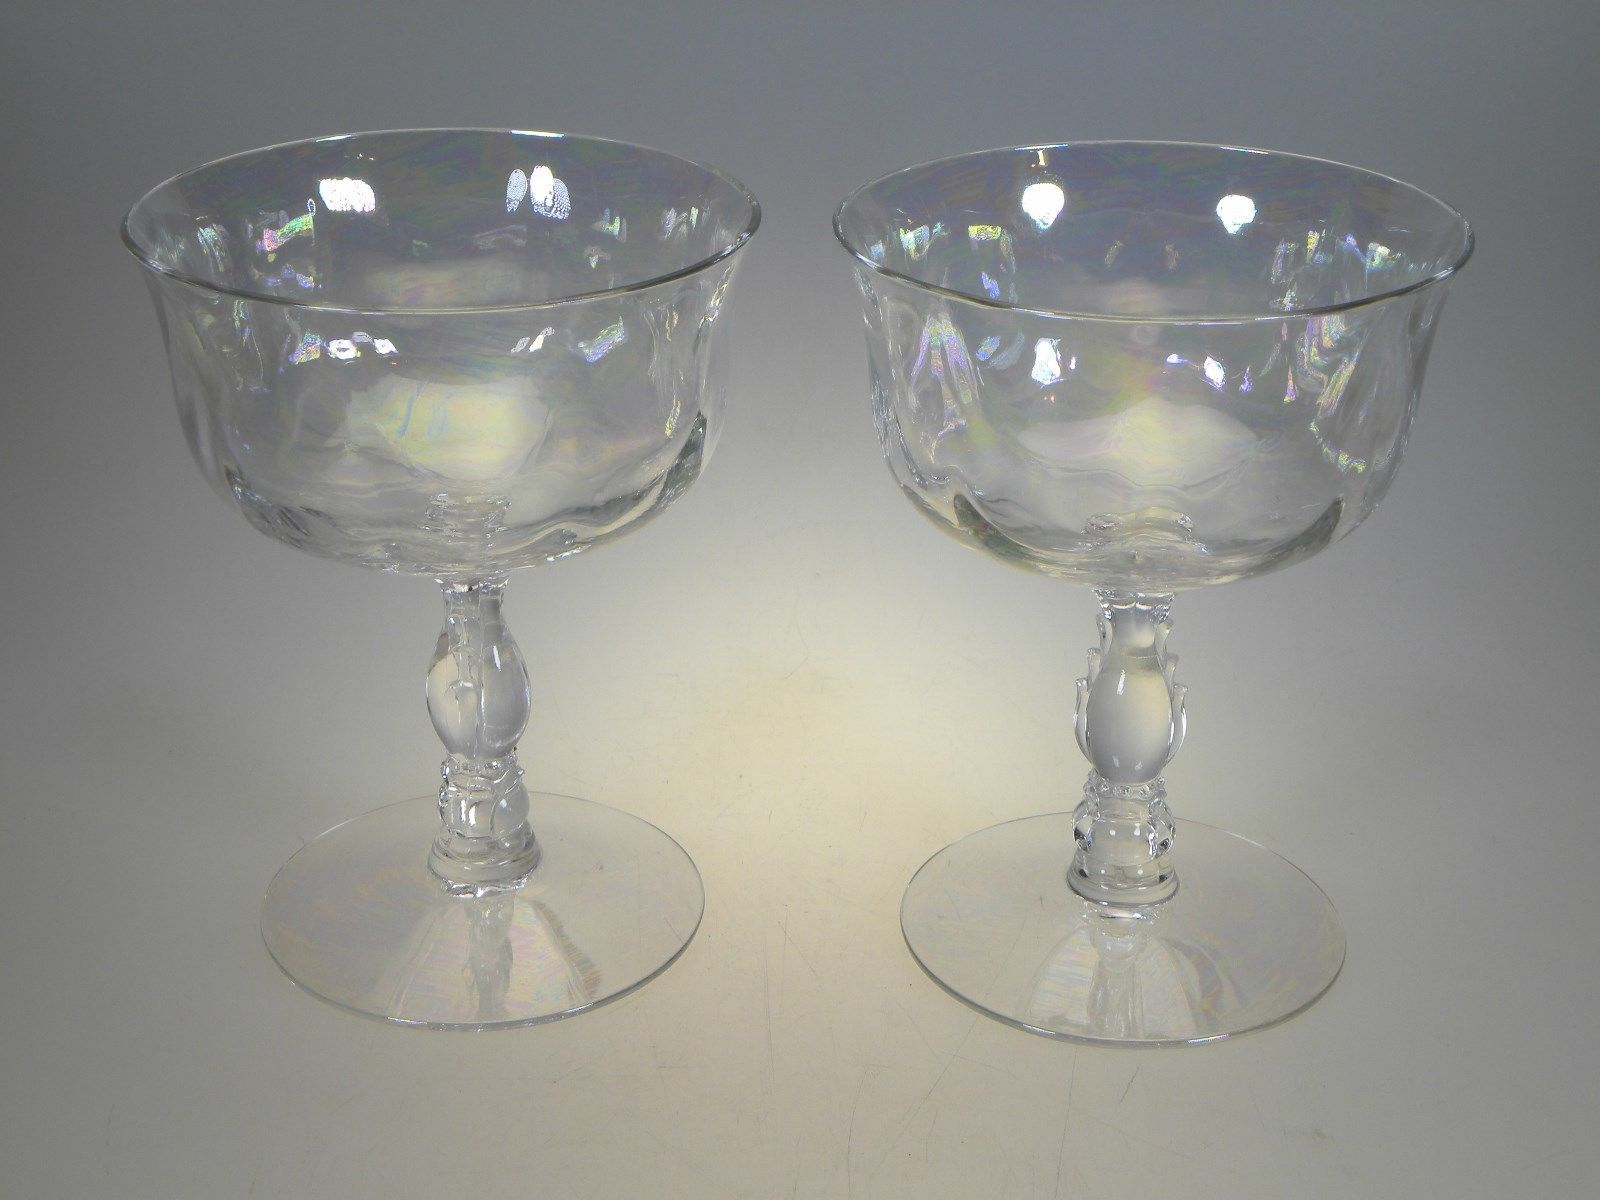 Primary image for Fostoria Crystal Coral Pearl Iridescent Low Sherbets Set of 2